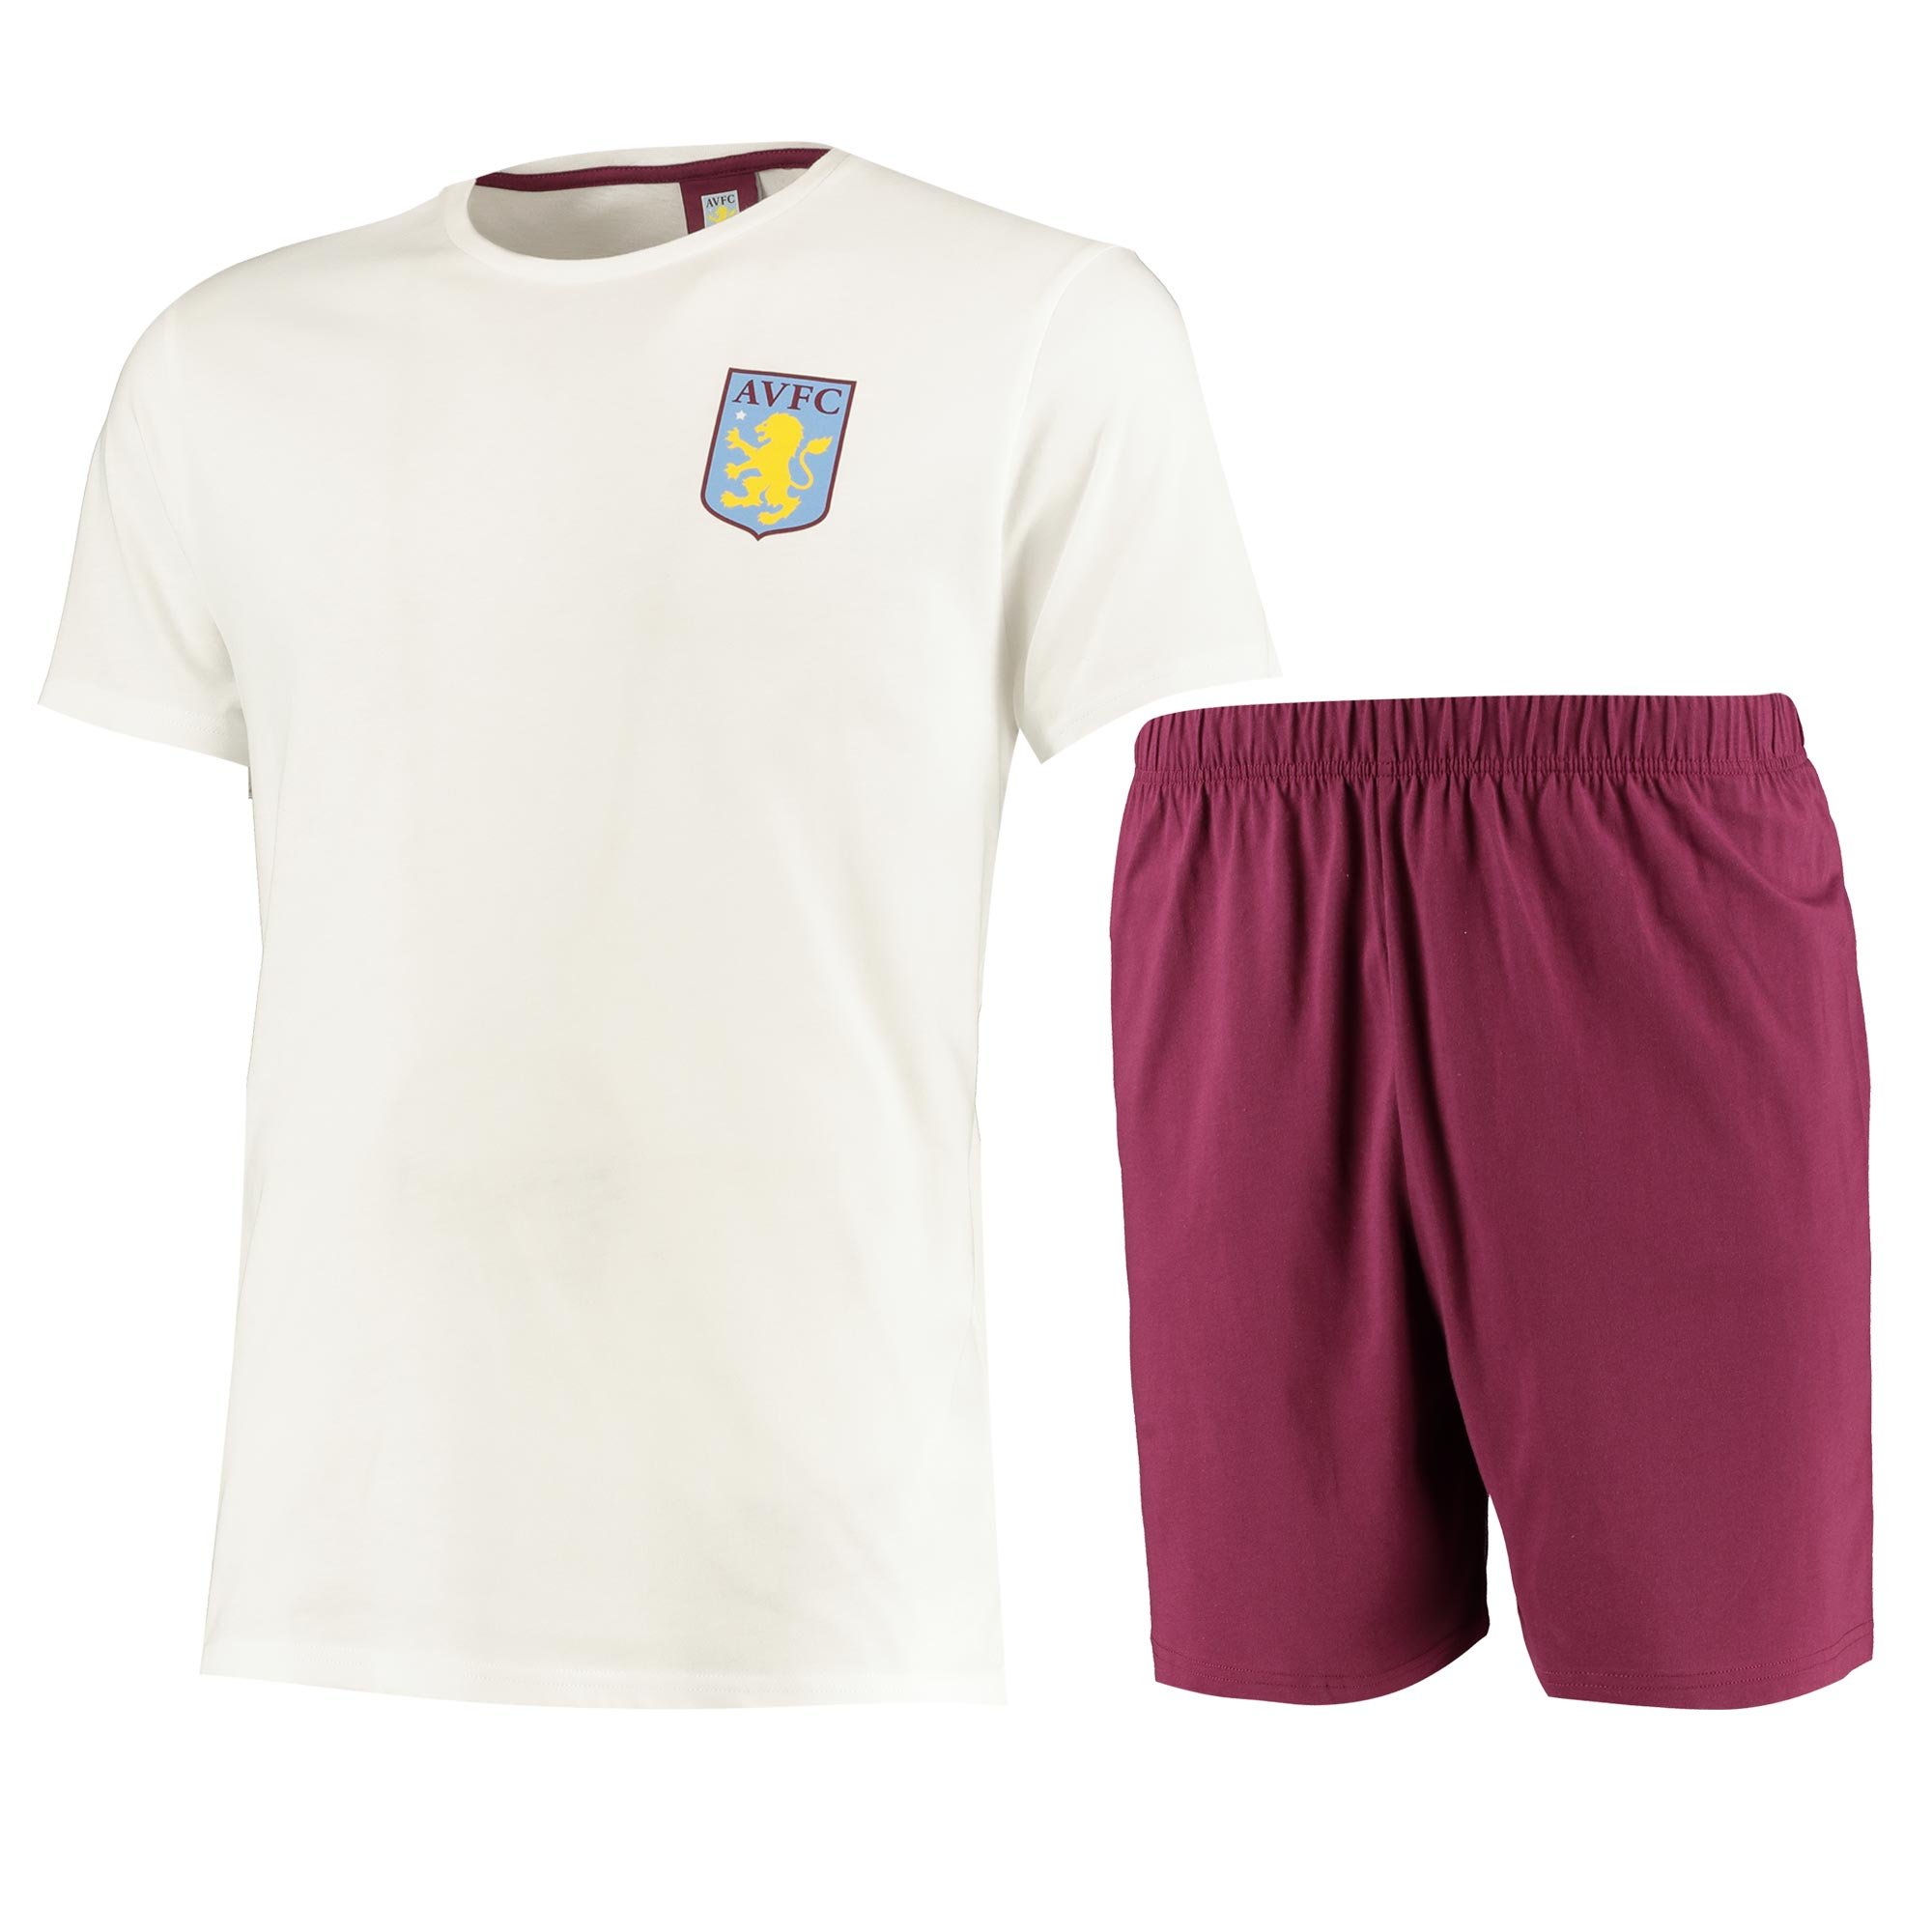 Aston Villa T-Shirt and Shorts Pyjama Set - White/Claret - Mens